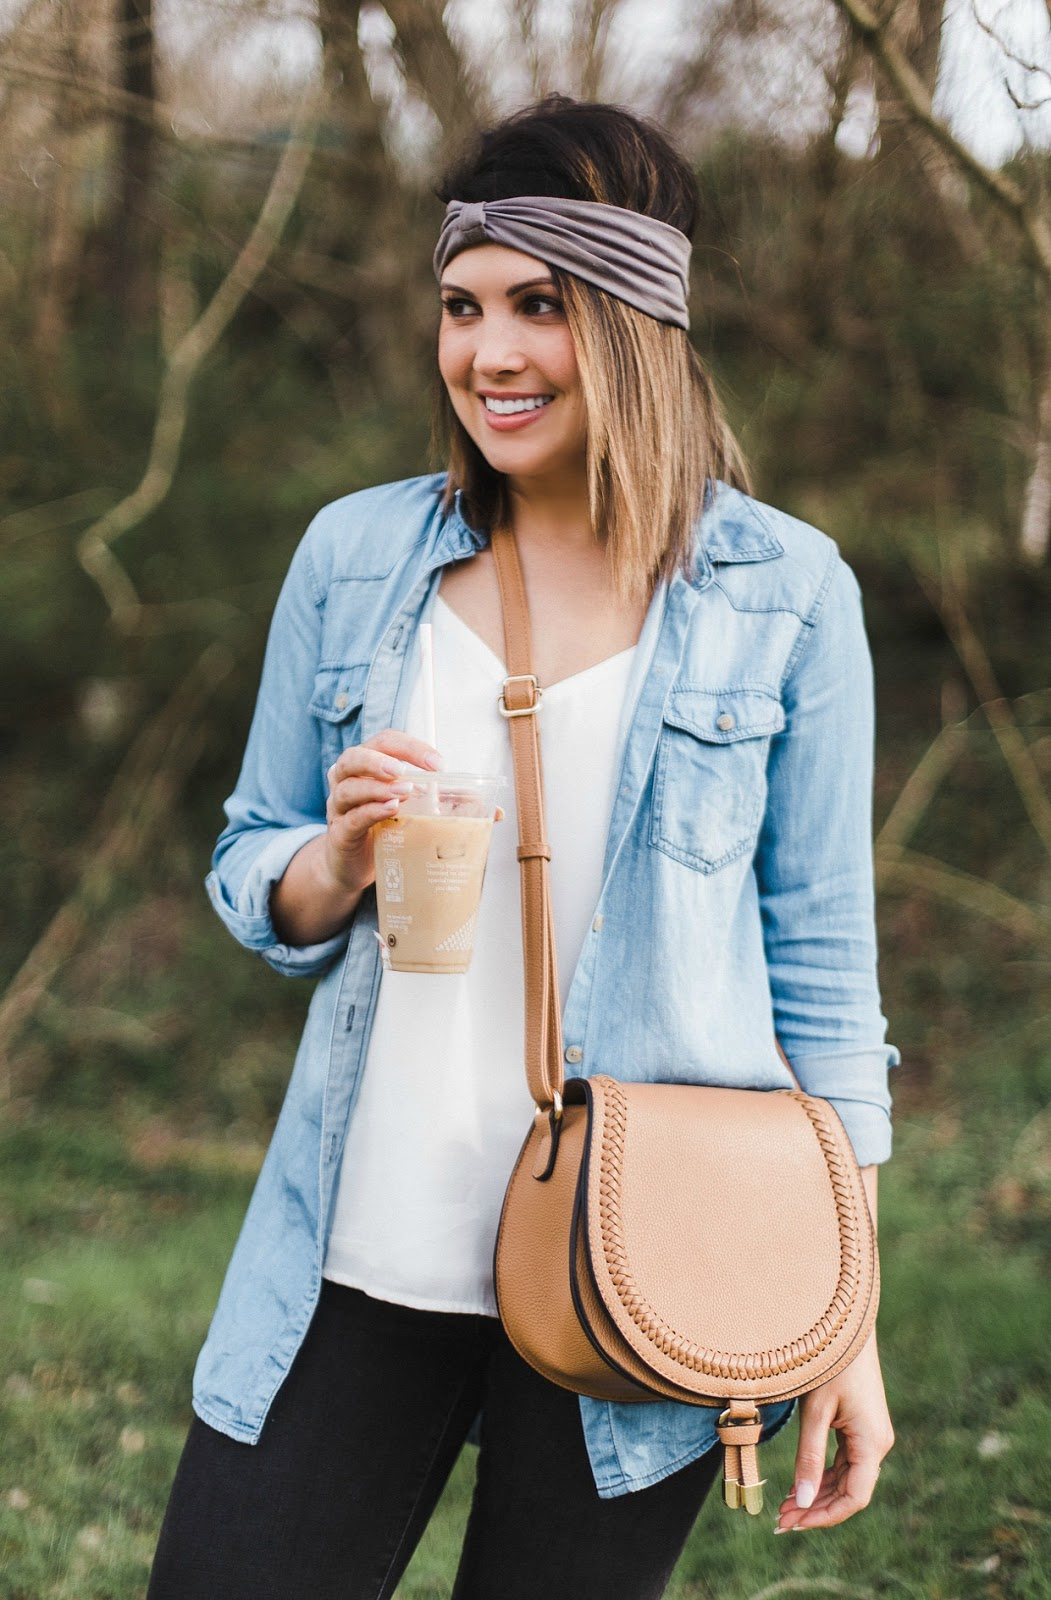 open chambray shirt outfit, boho style, turban headband, xo samantha brooke, samantha brooke, life and messy hair, sam brooke photo, samantha brooke photography, nc blogger, lifestyle nc blogger, lifestyle photographer, marc fisher platform wedges